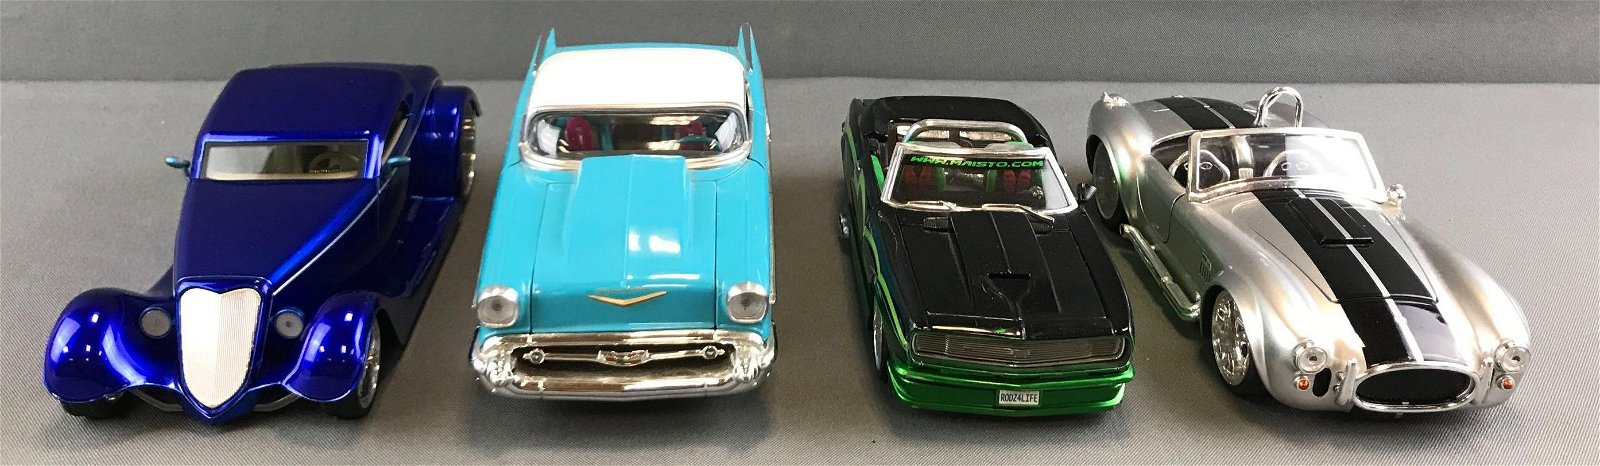 Group of 4 die cast scale model vehicles